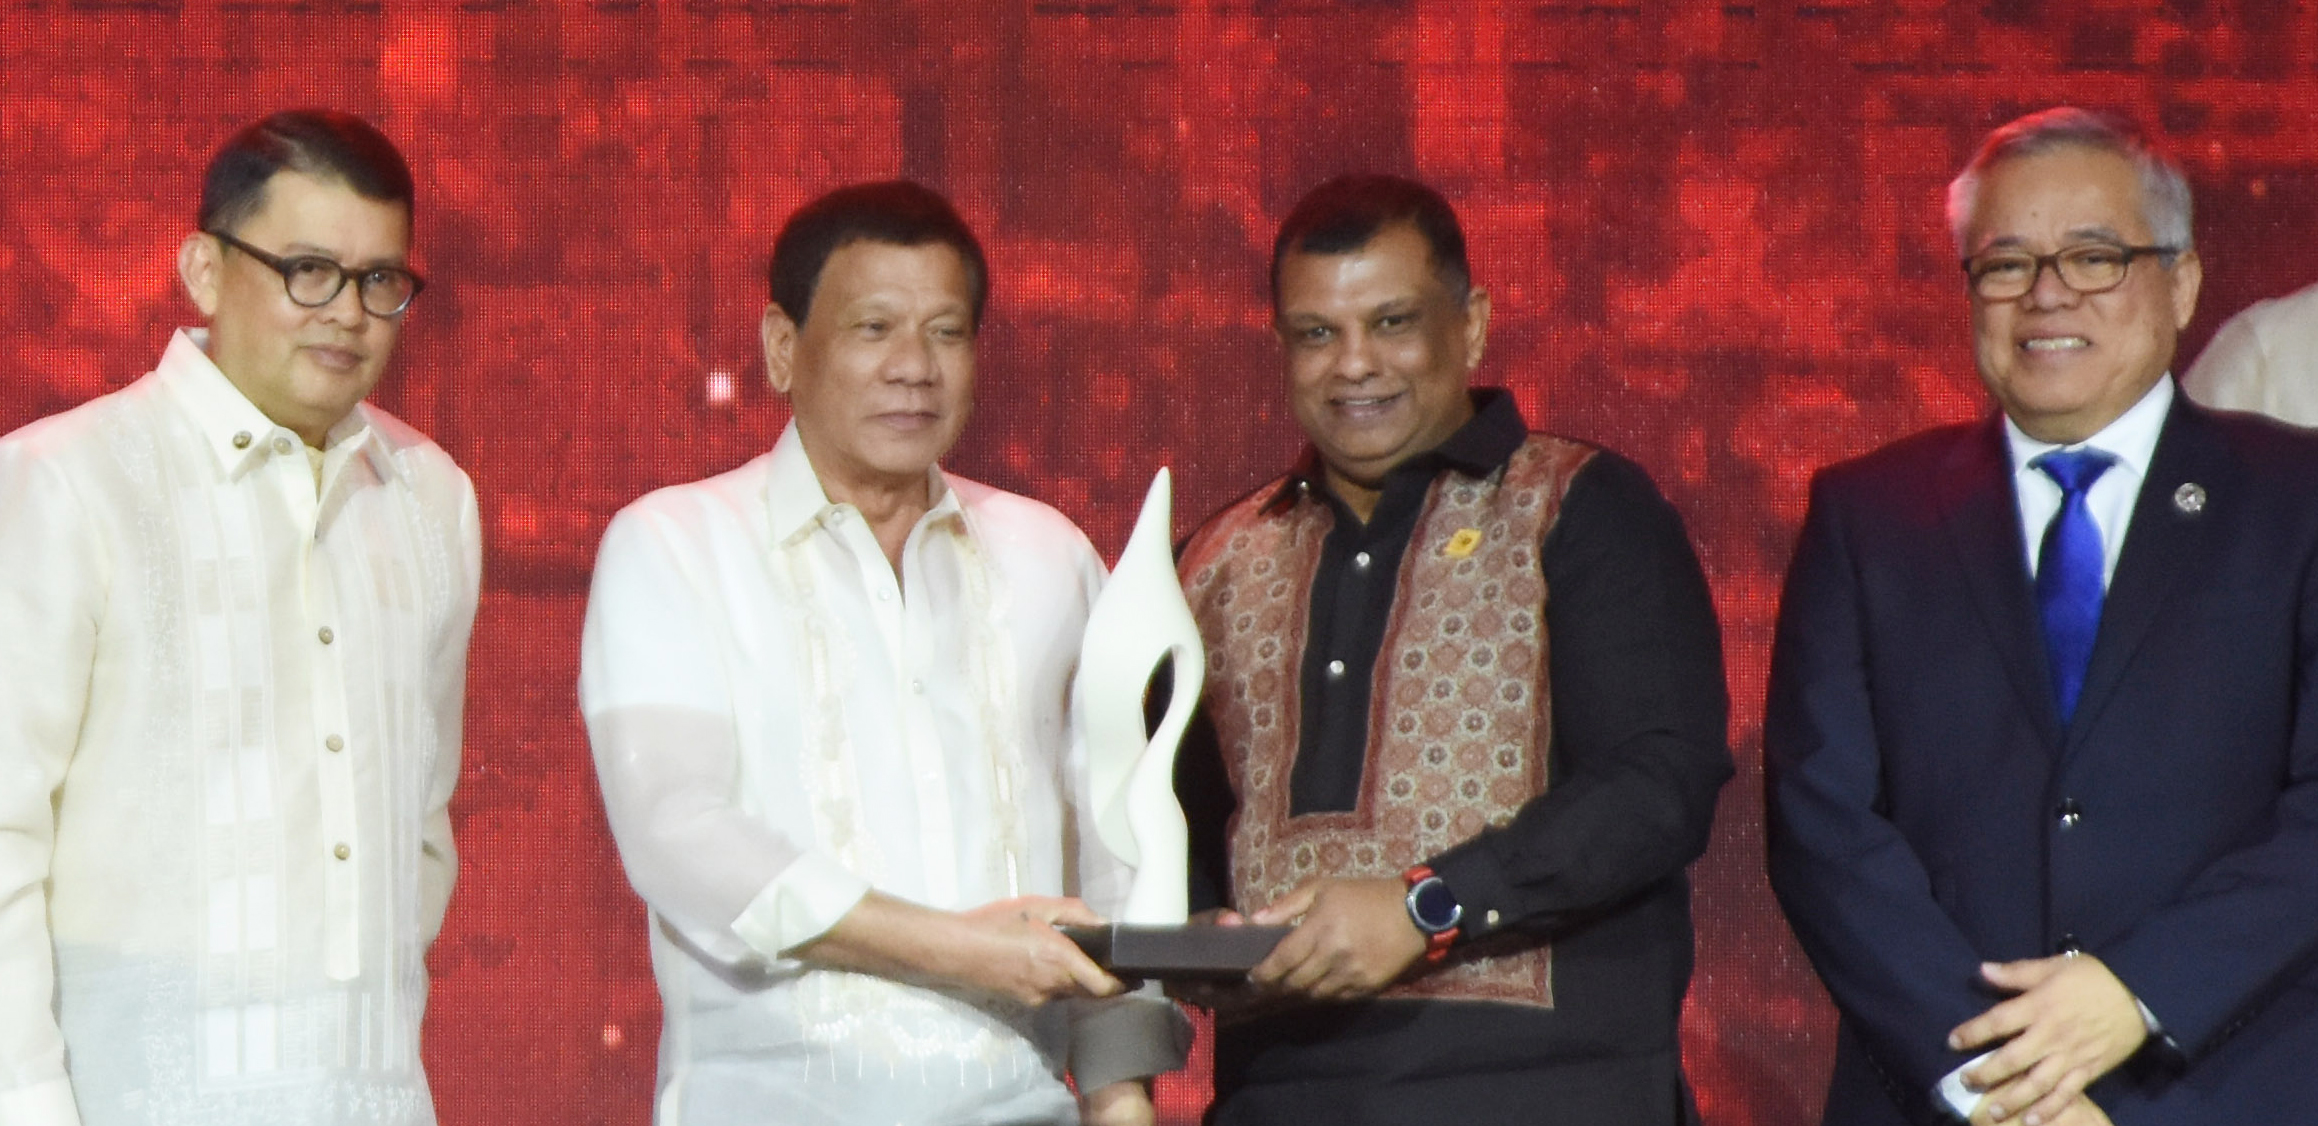 09 Asean Business Advisory Council chairman Joey Concepcion, Philippine President Rodrigo Roa Duterte, AirAsia Group CEO Tony Fernandes, Philippine Trade and Industry Secretary Ramon Lopez.JPG